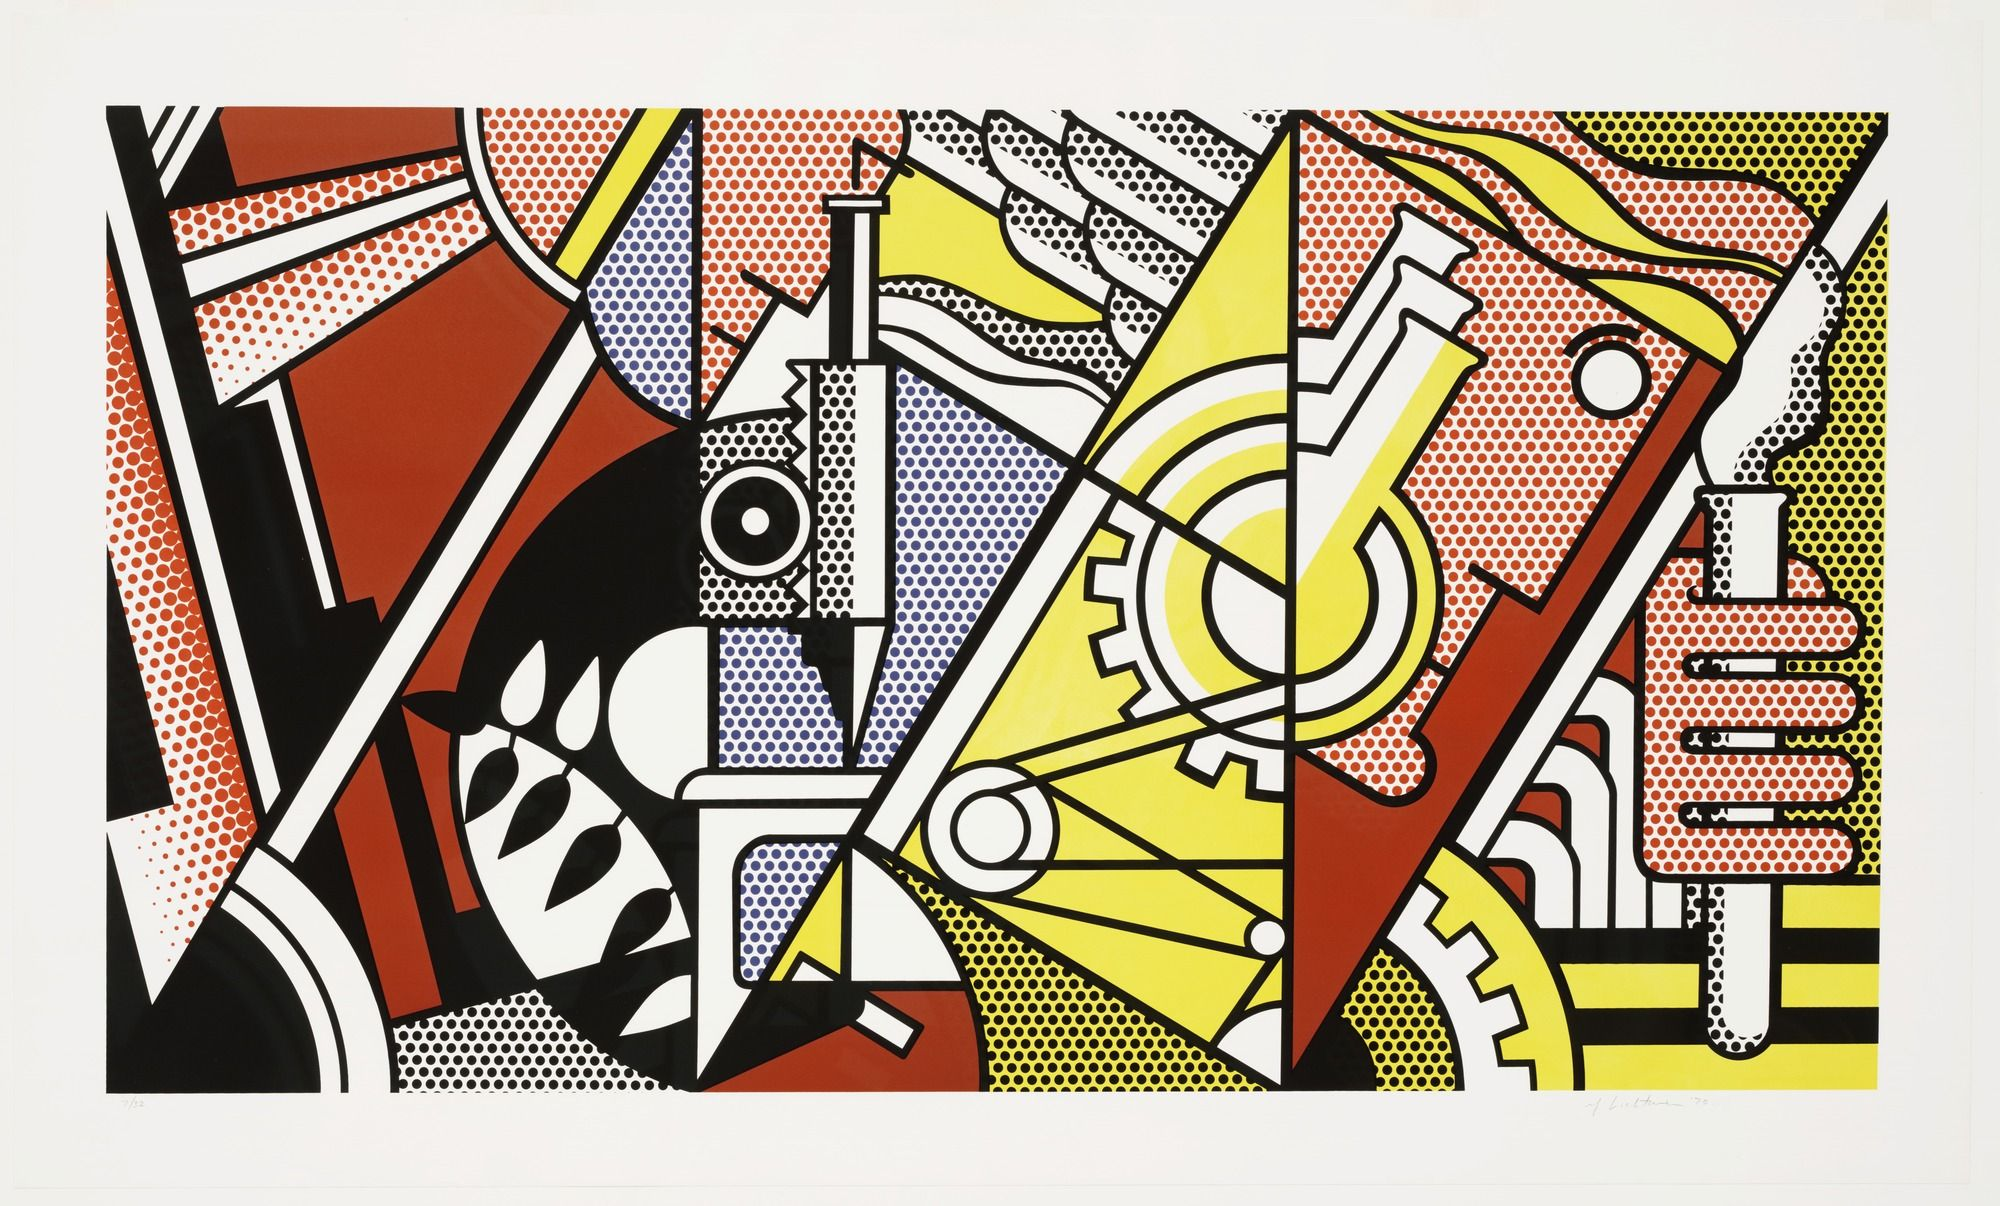 Peace Through Chemistry I. By: Roy Lichtenstein. 9/30/16 I enjoyed the way the triad colors of red, blue, and yellow came together in this screen print. The triad colors are used to make each object stand out in its own way which i like. I also like the cubist style used here along with the chemistry elements in the print.